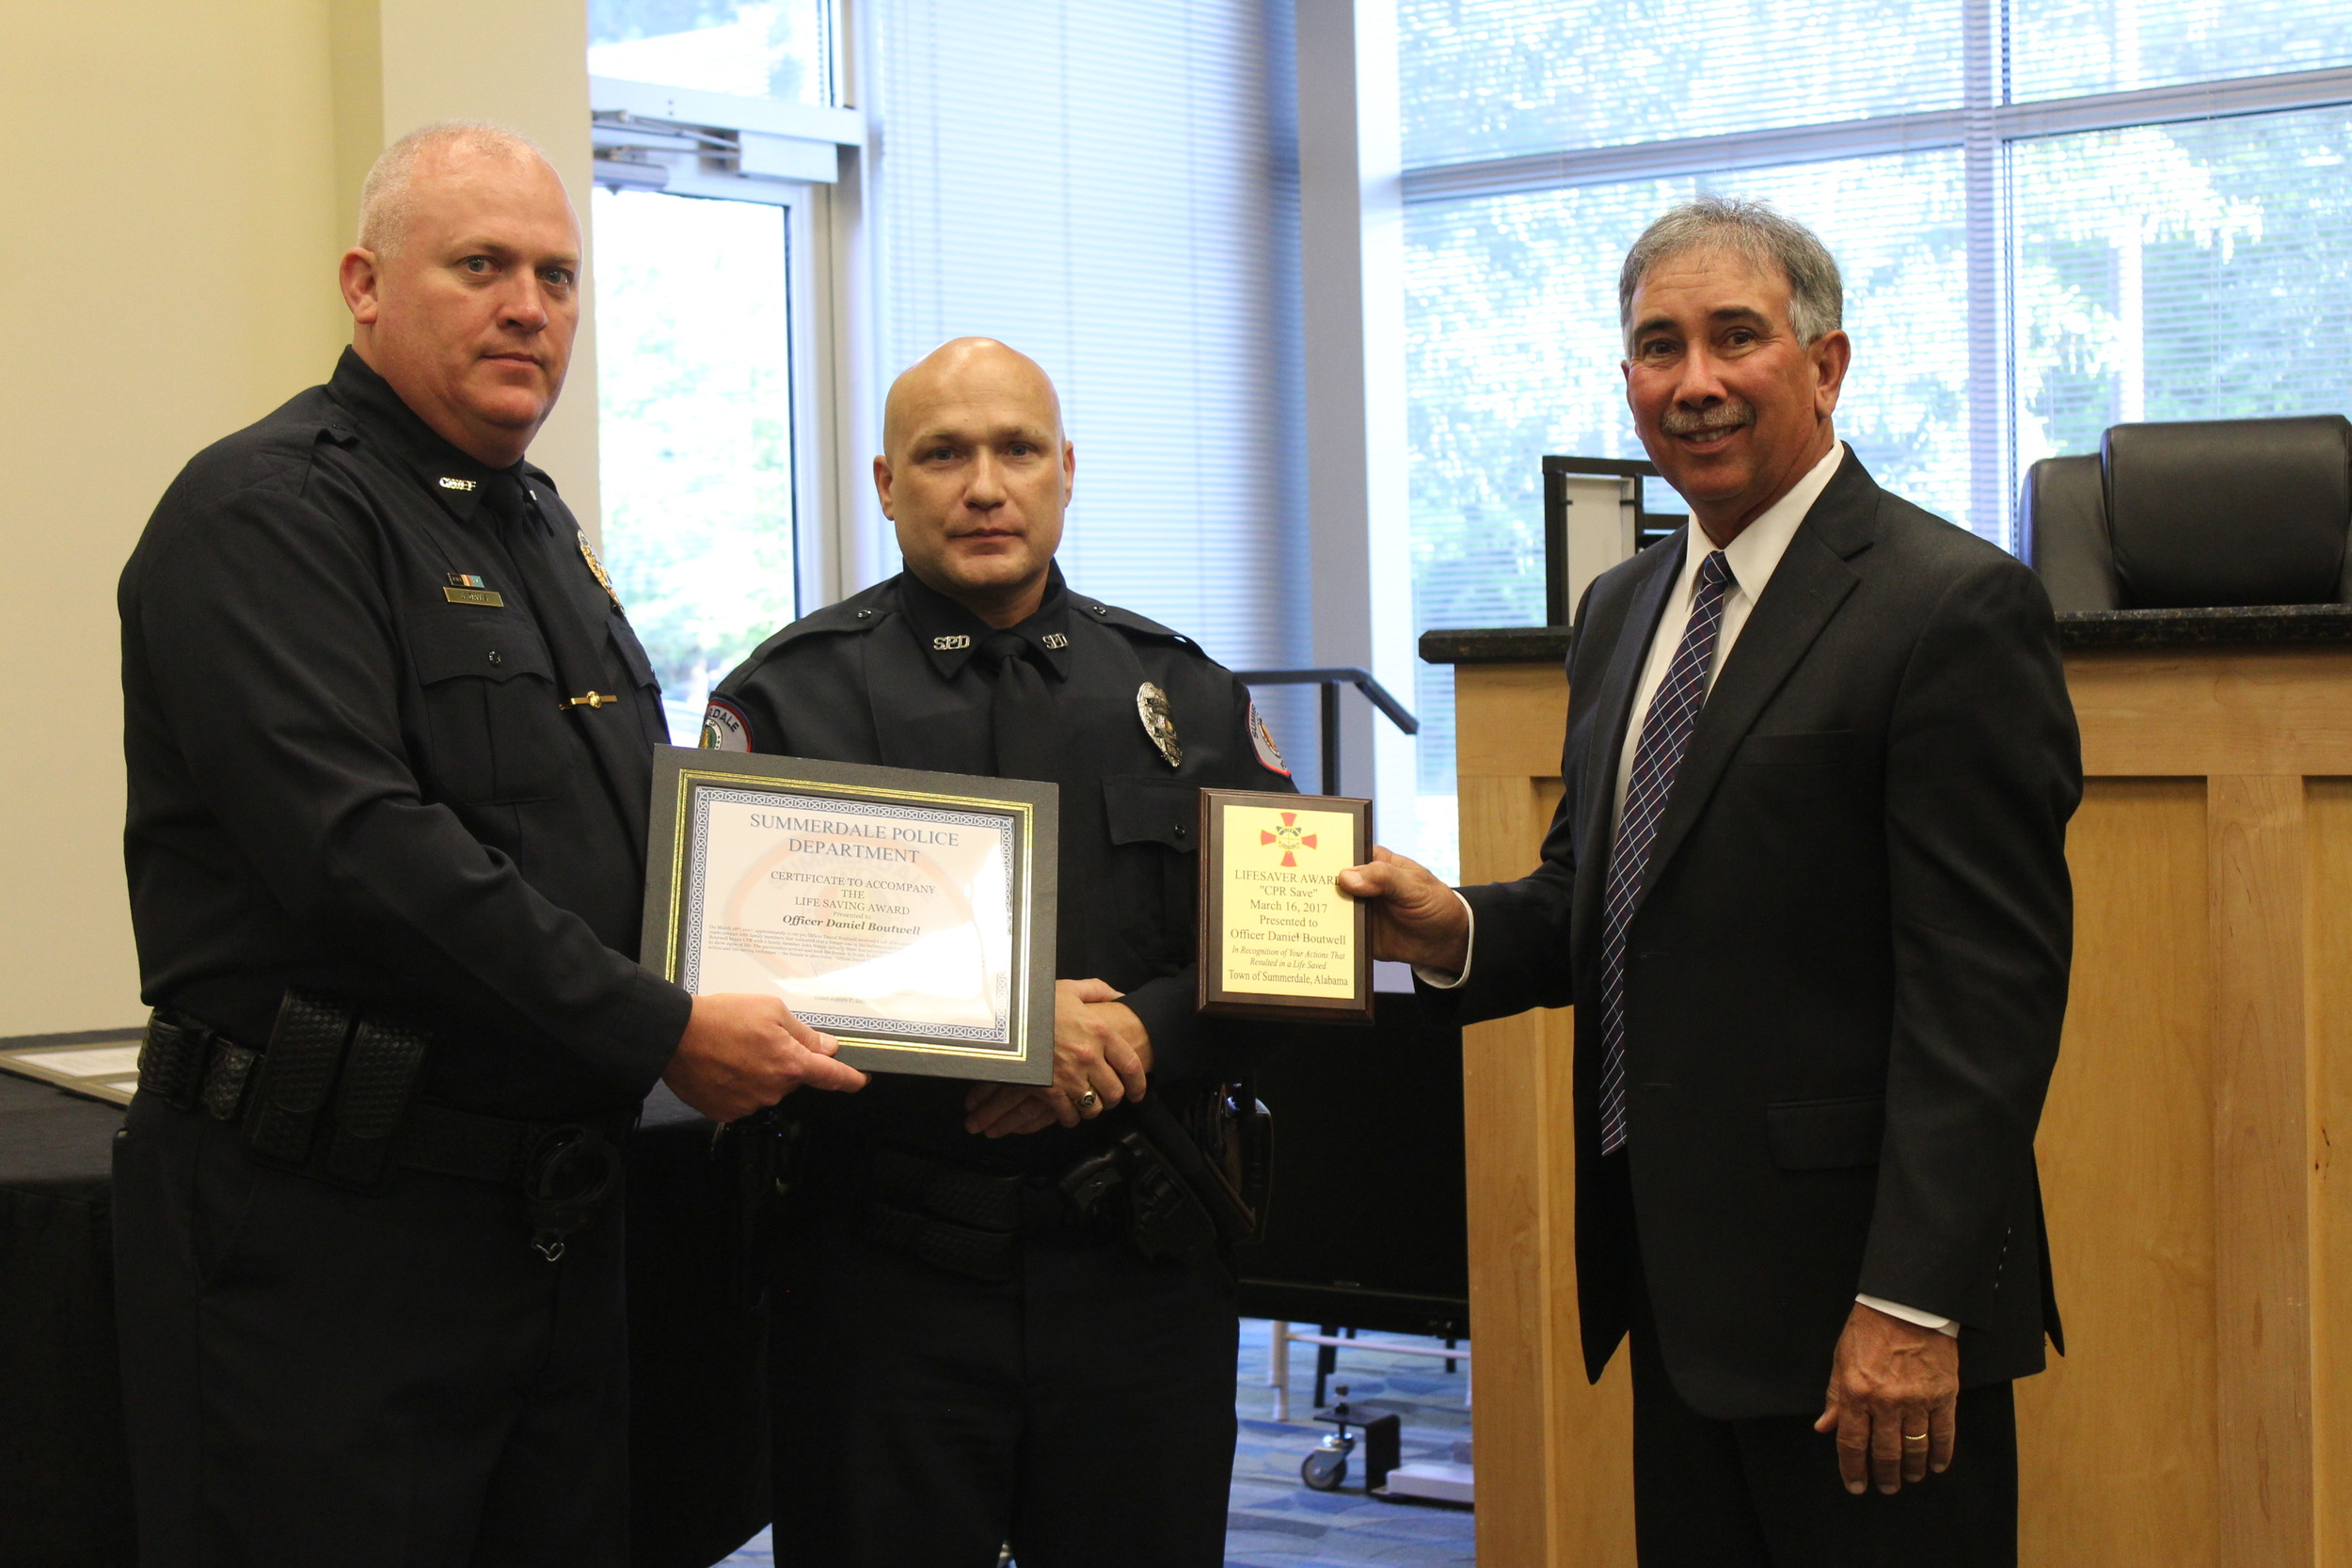 Officer Daniel Boutwell with the Summerdale Police Department received one of three lifesaving awards at the Summerdale Town Council meeting on April 10.